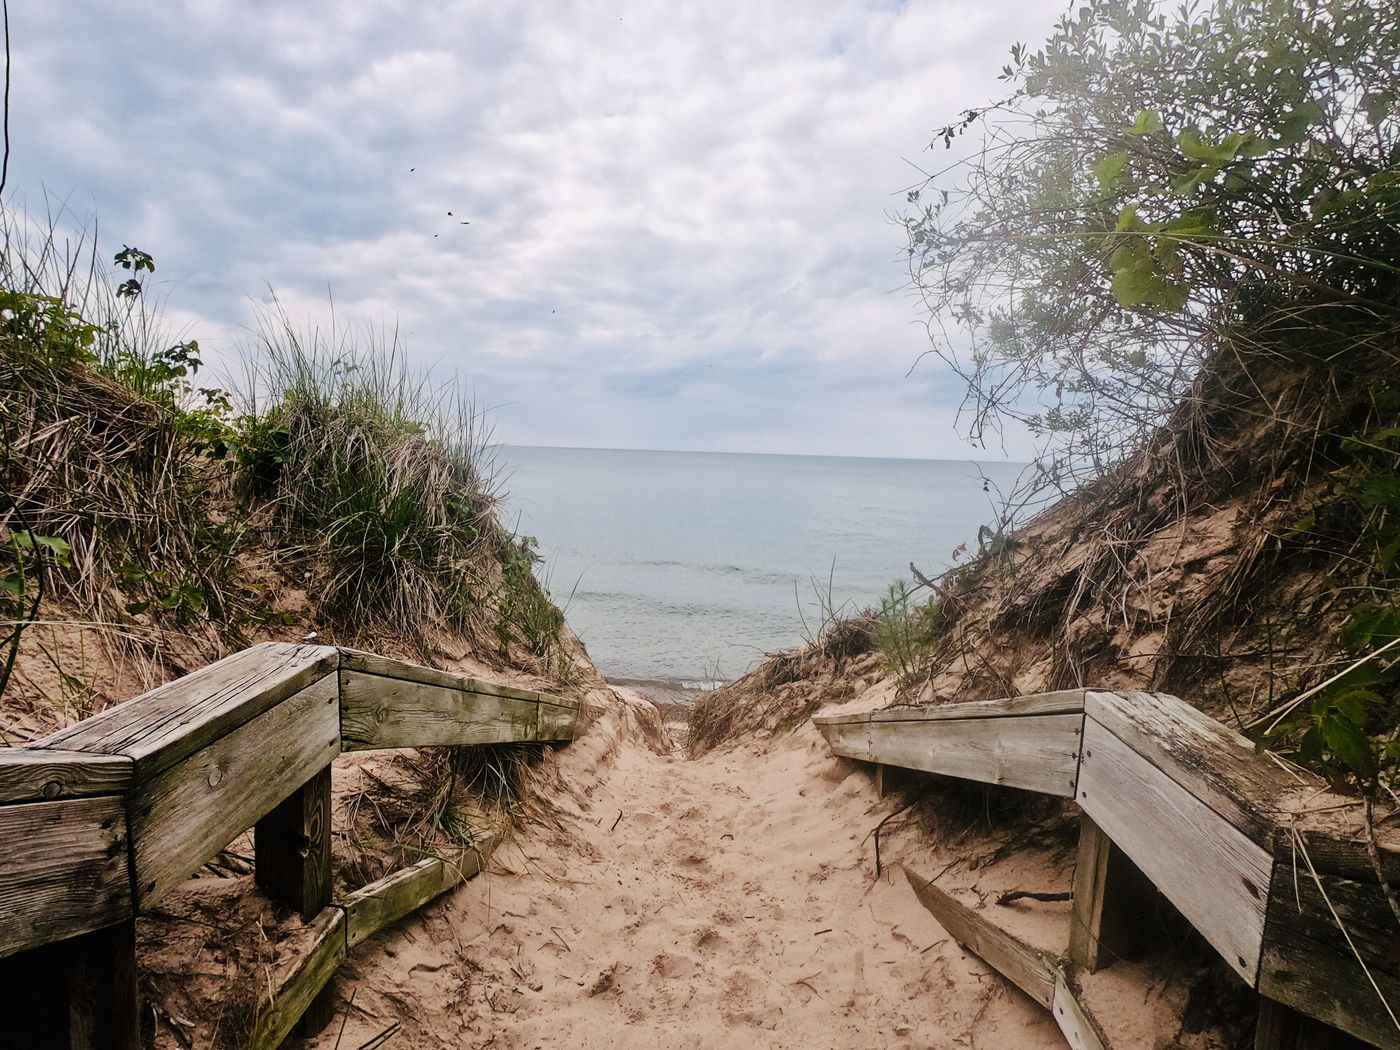 Places to camp near Chicago: Best forest preserves and state